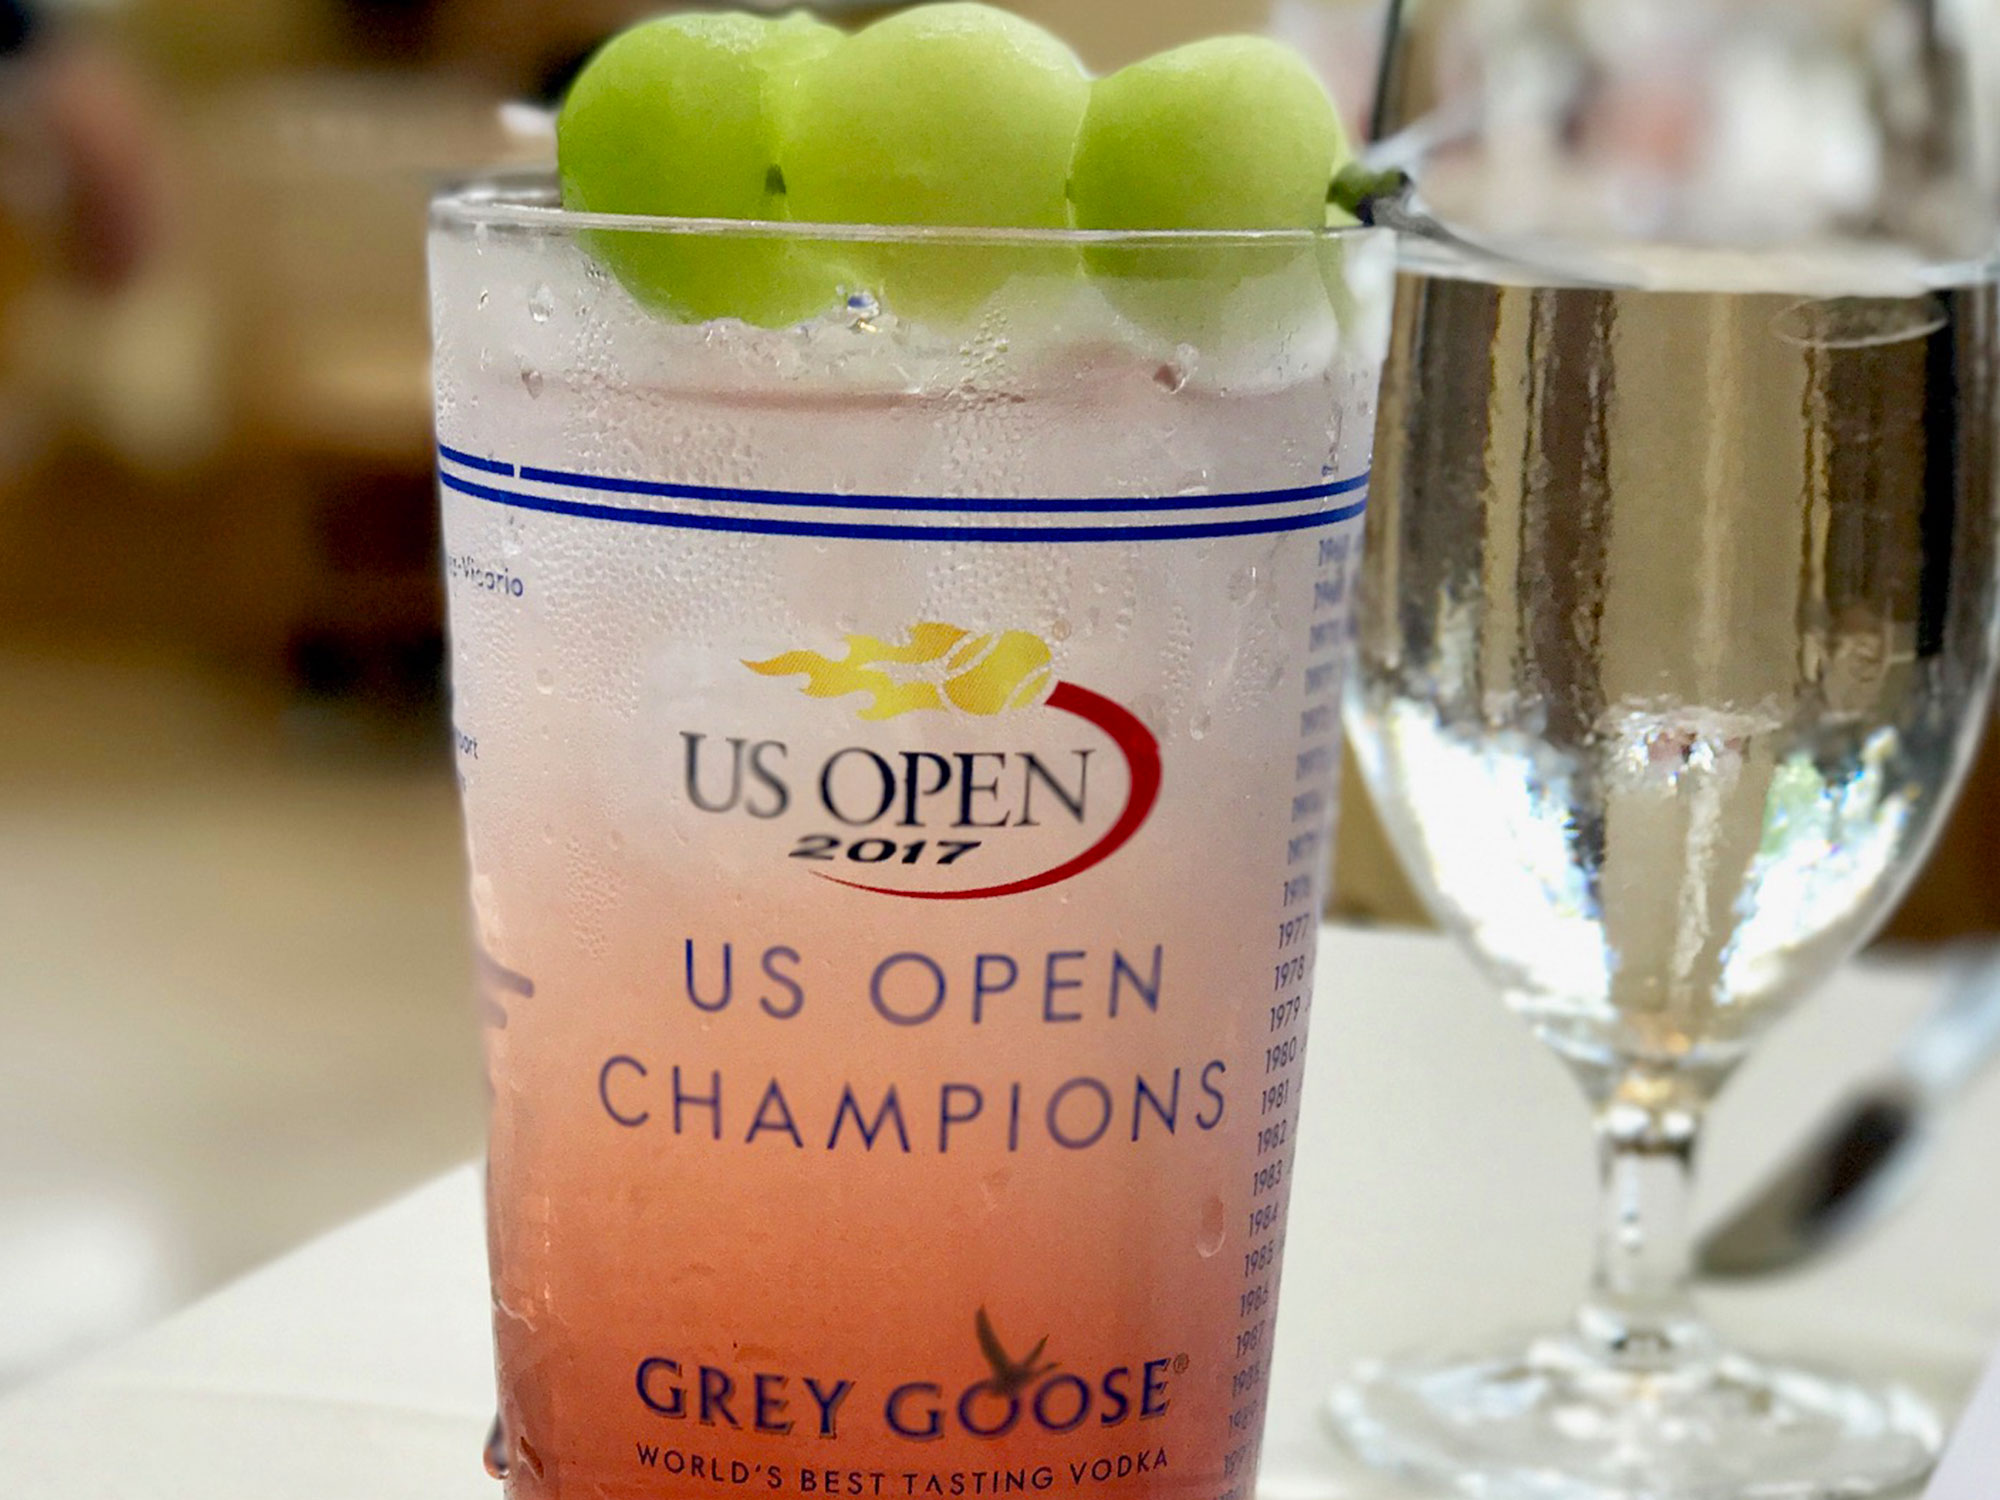 How To Make The Most Of Going To The US Open The Everything US - Us open grounds map 2017